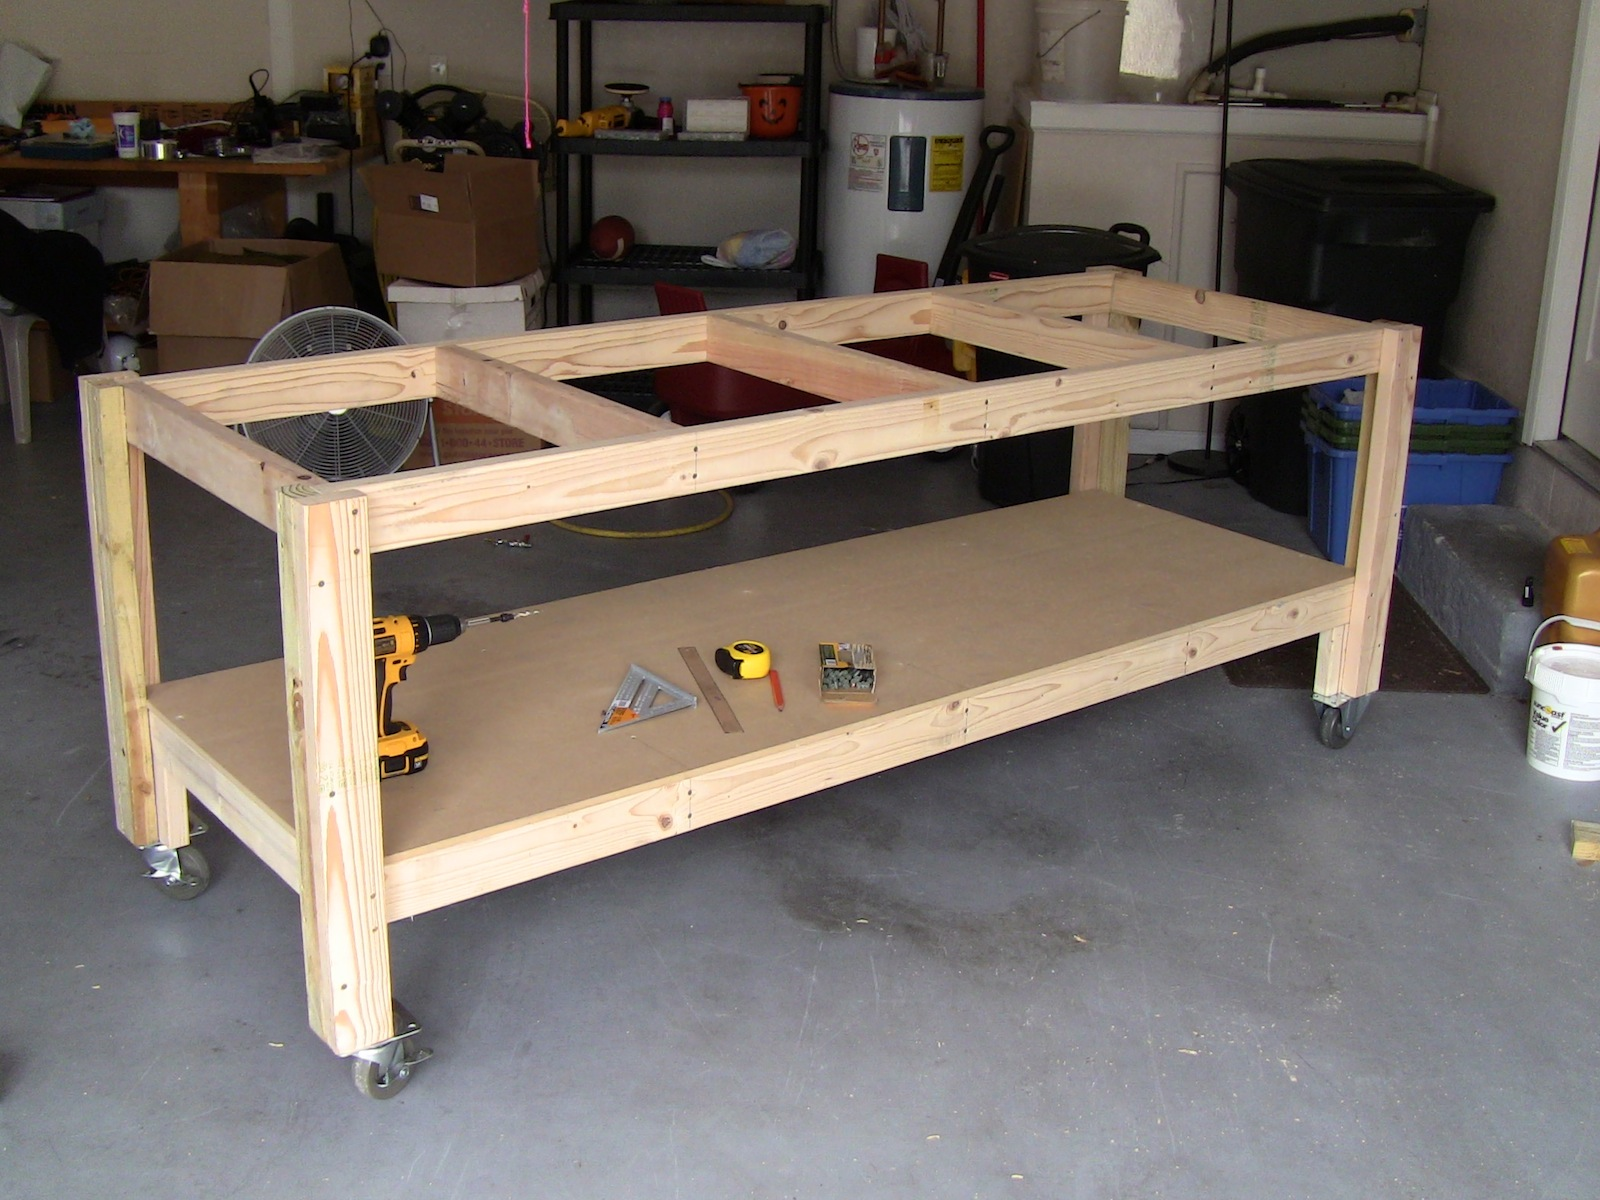 2GNTcom Forums Viewing Message DIY Workbench Project